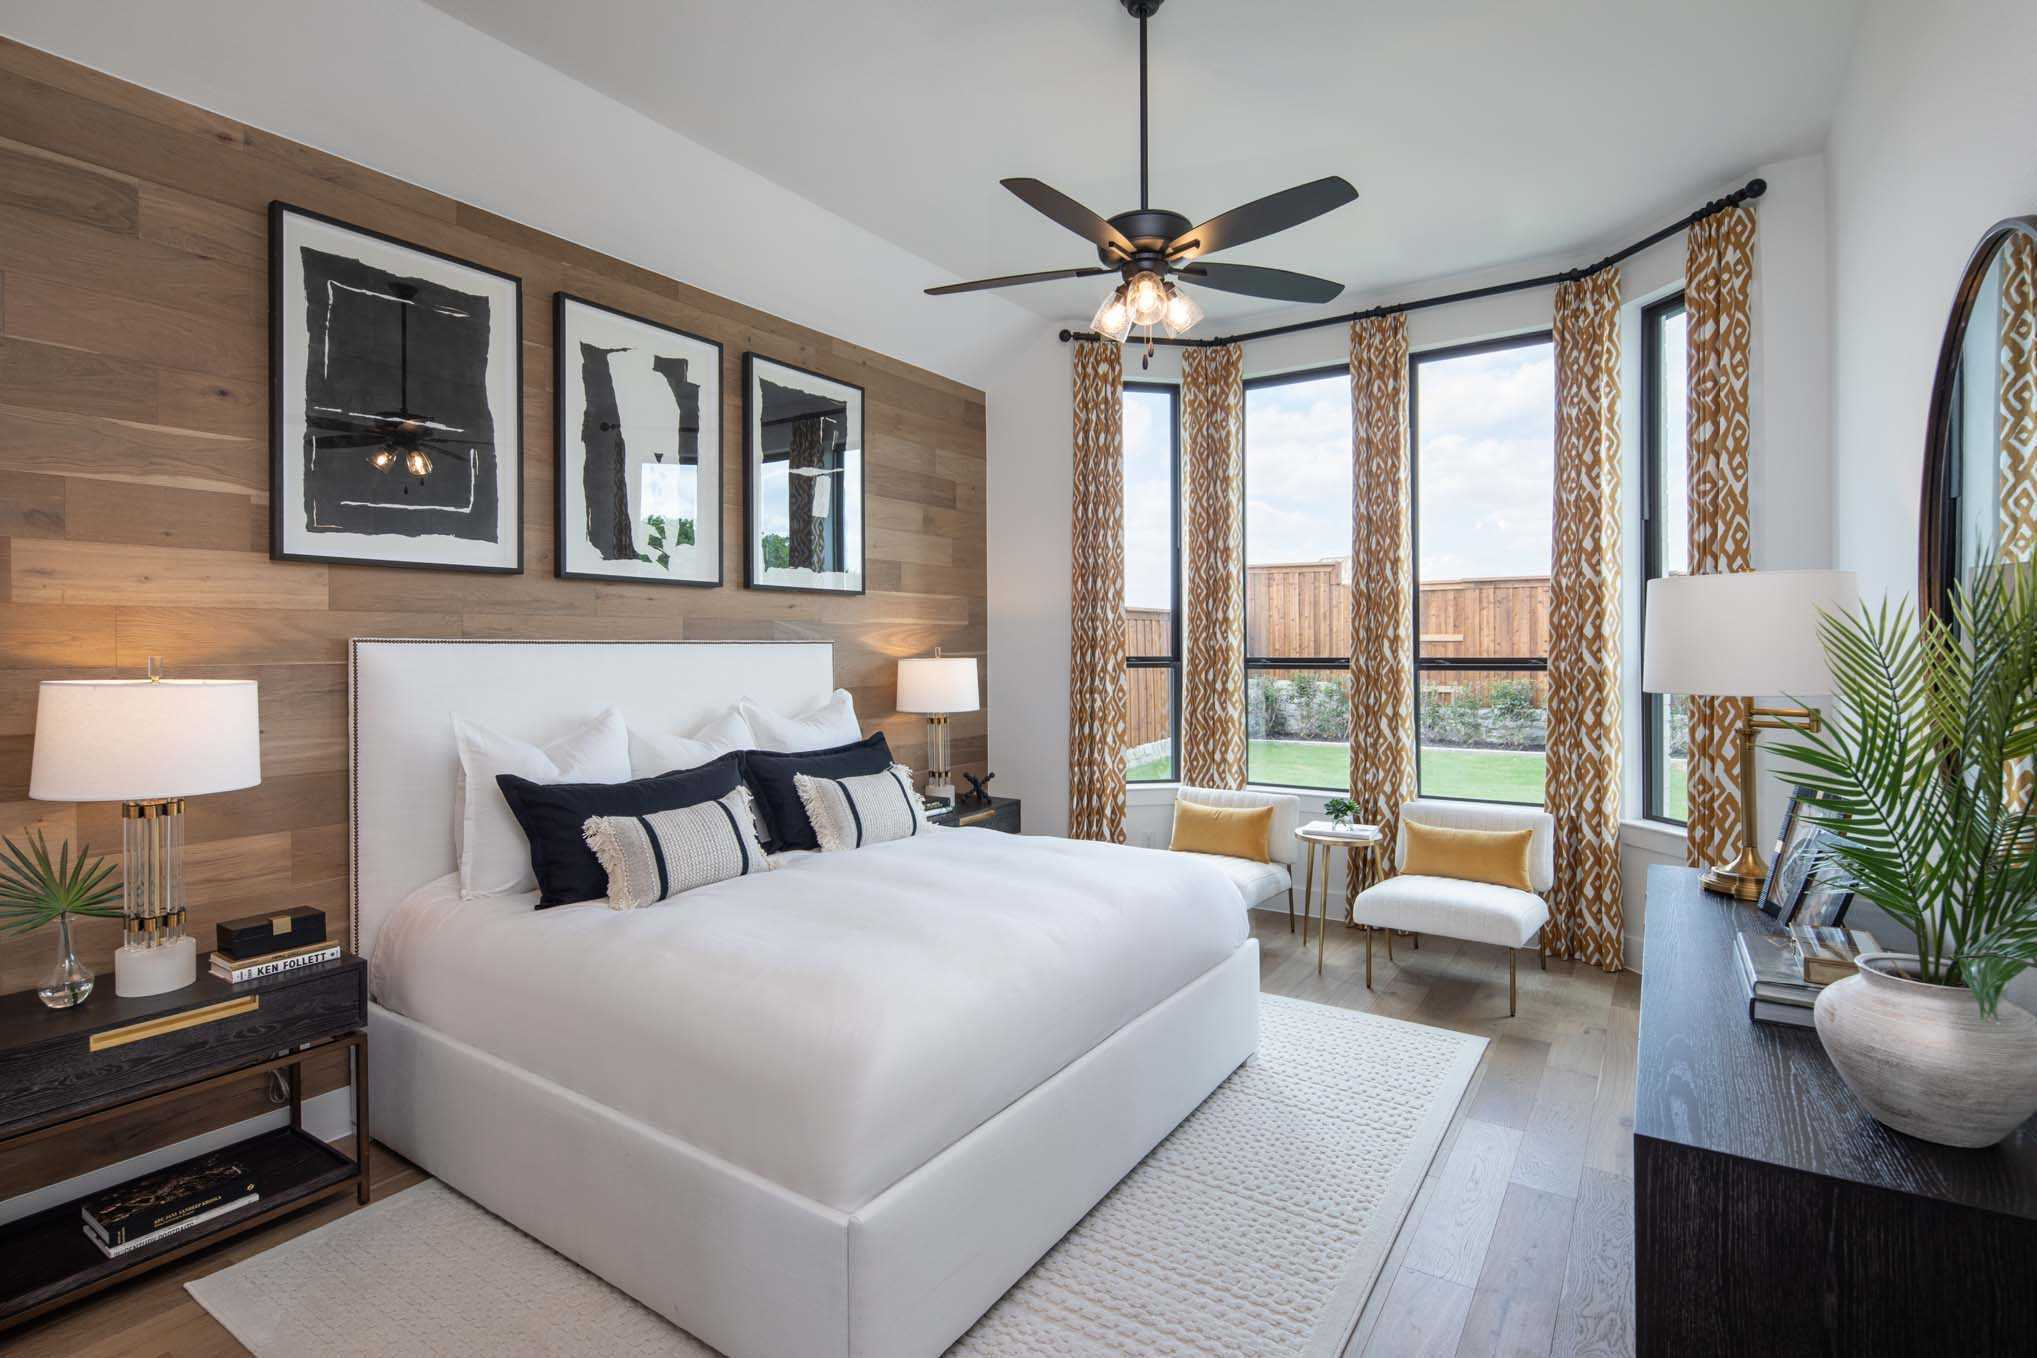 Bedroom featured in the Plan Davenport By Highland Homes in Houston, TX